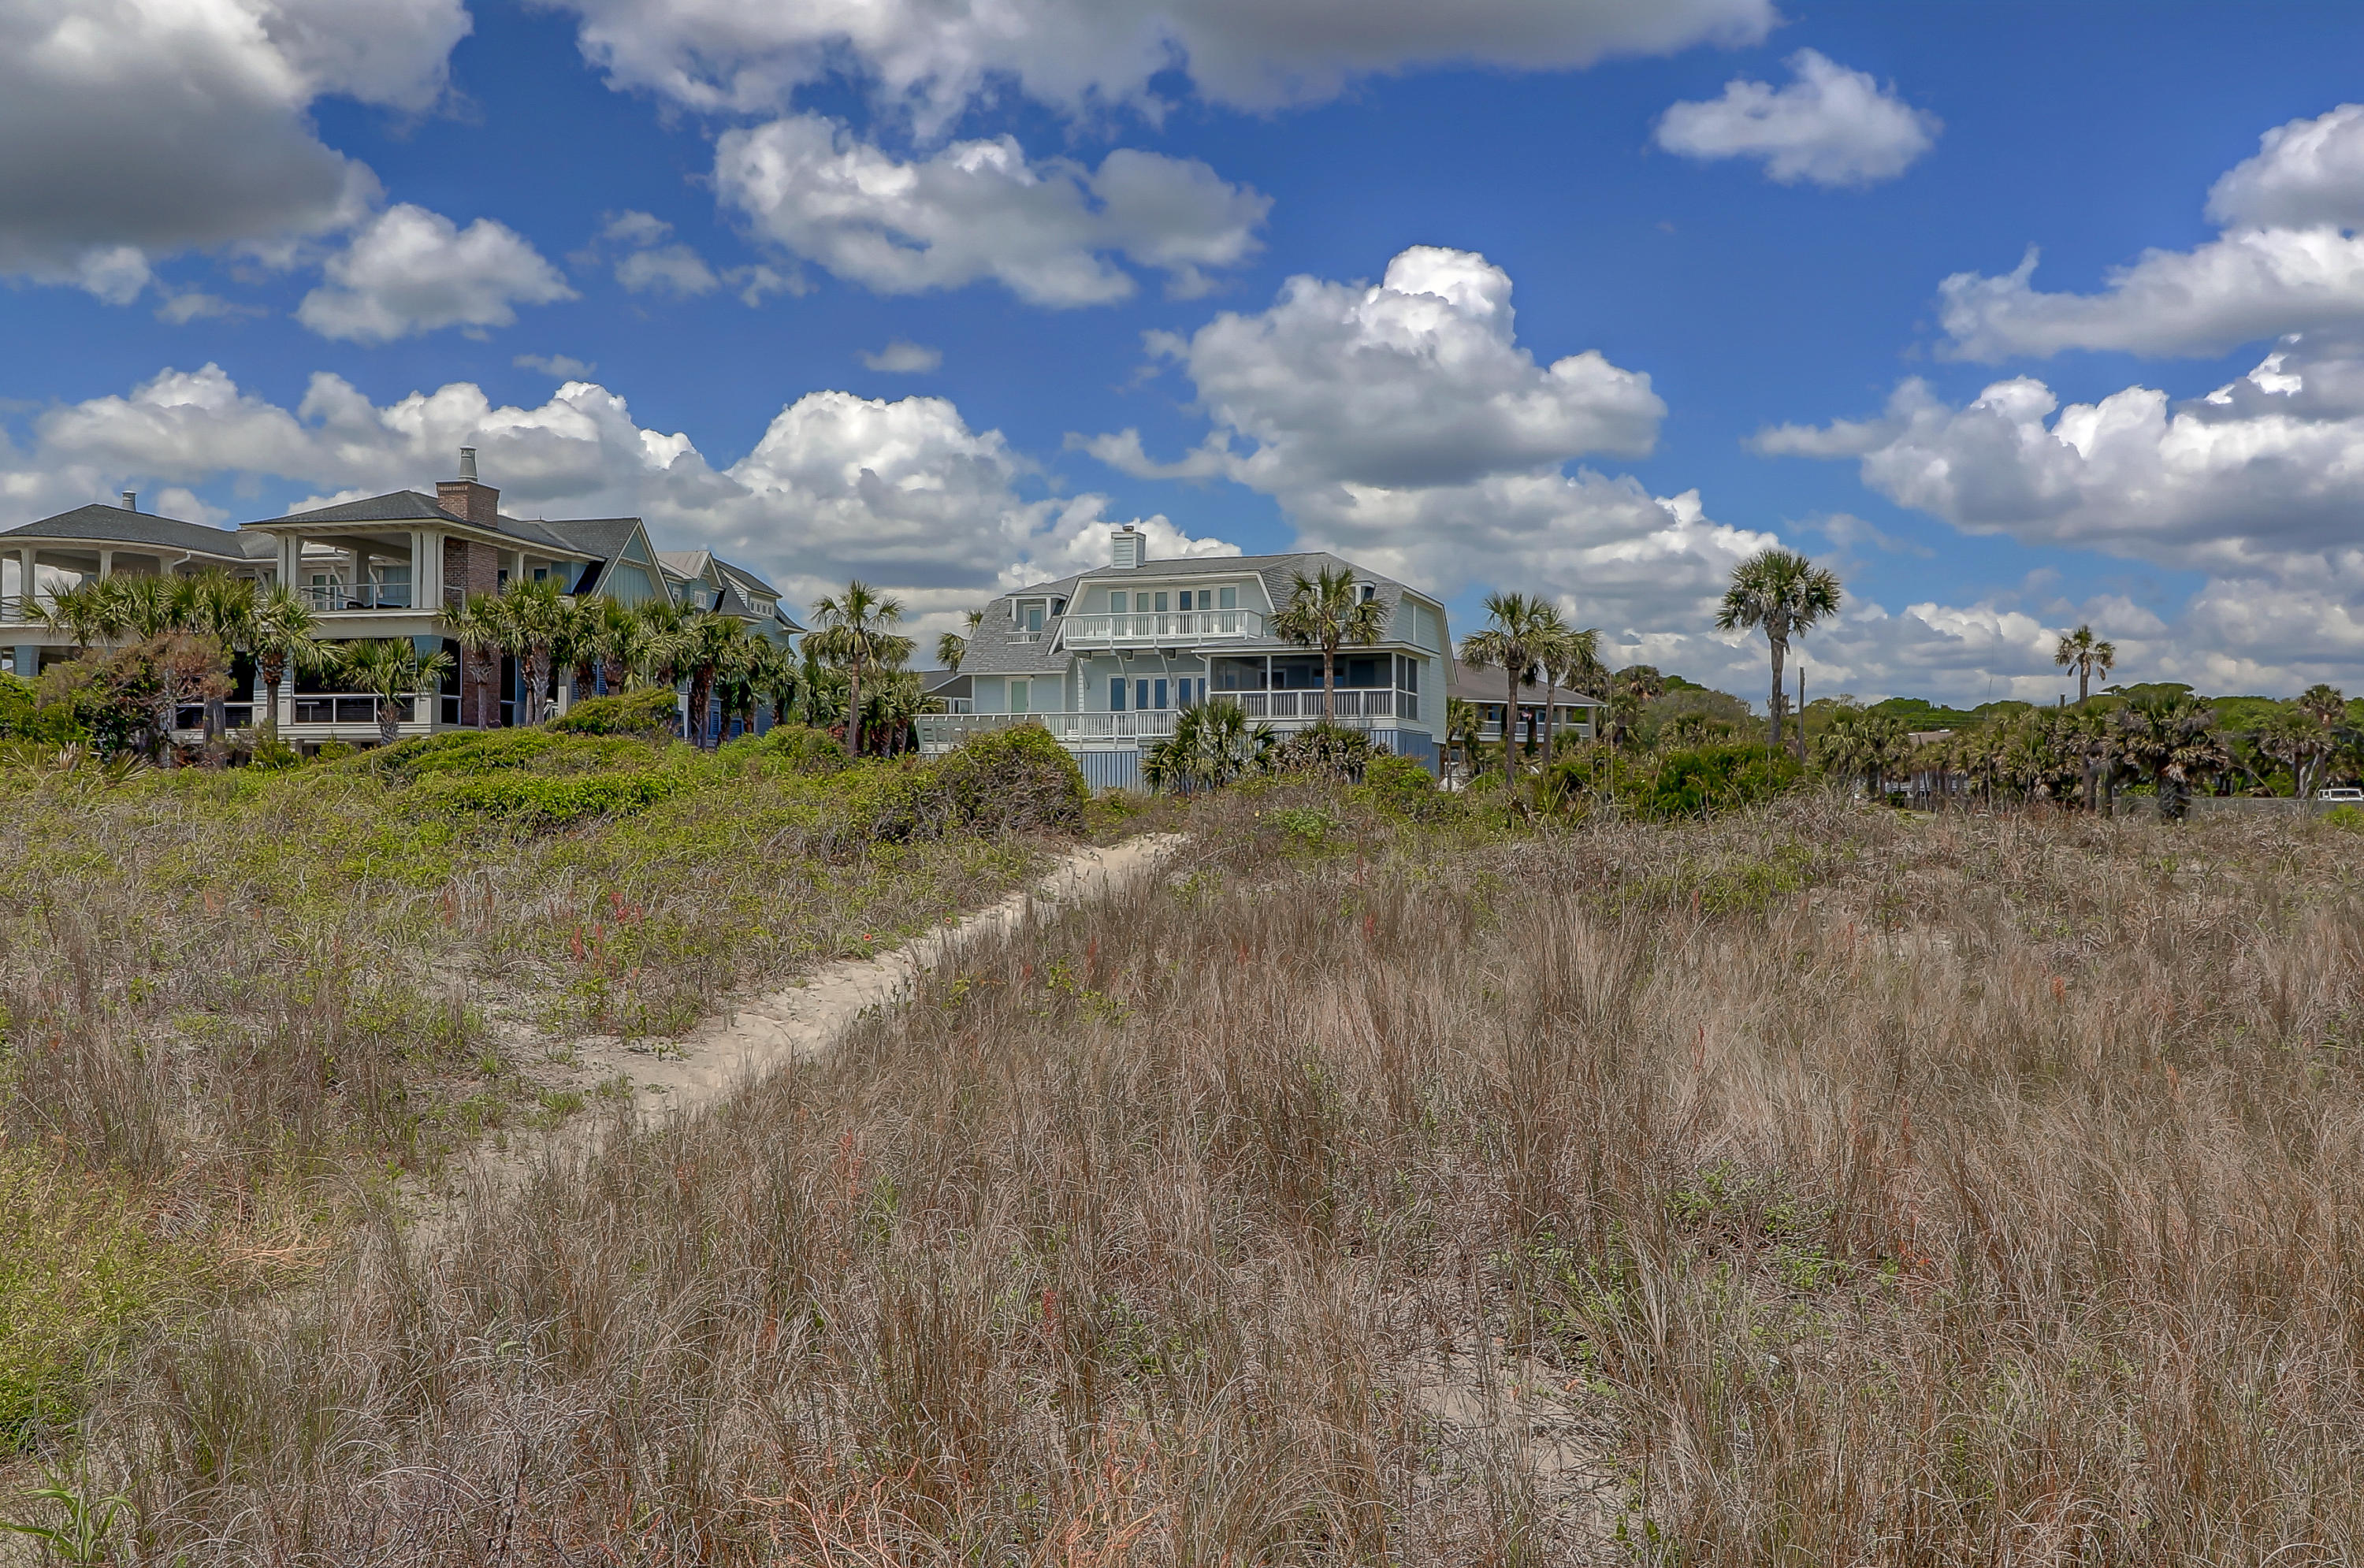 Isle of Palms Homes For Sale - 1 47th (1/13th), Isle of Palms, SC - 57